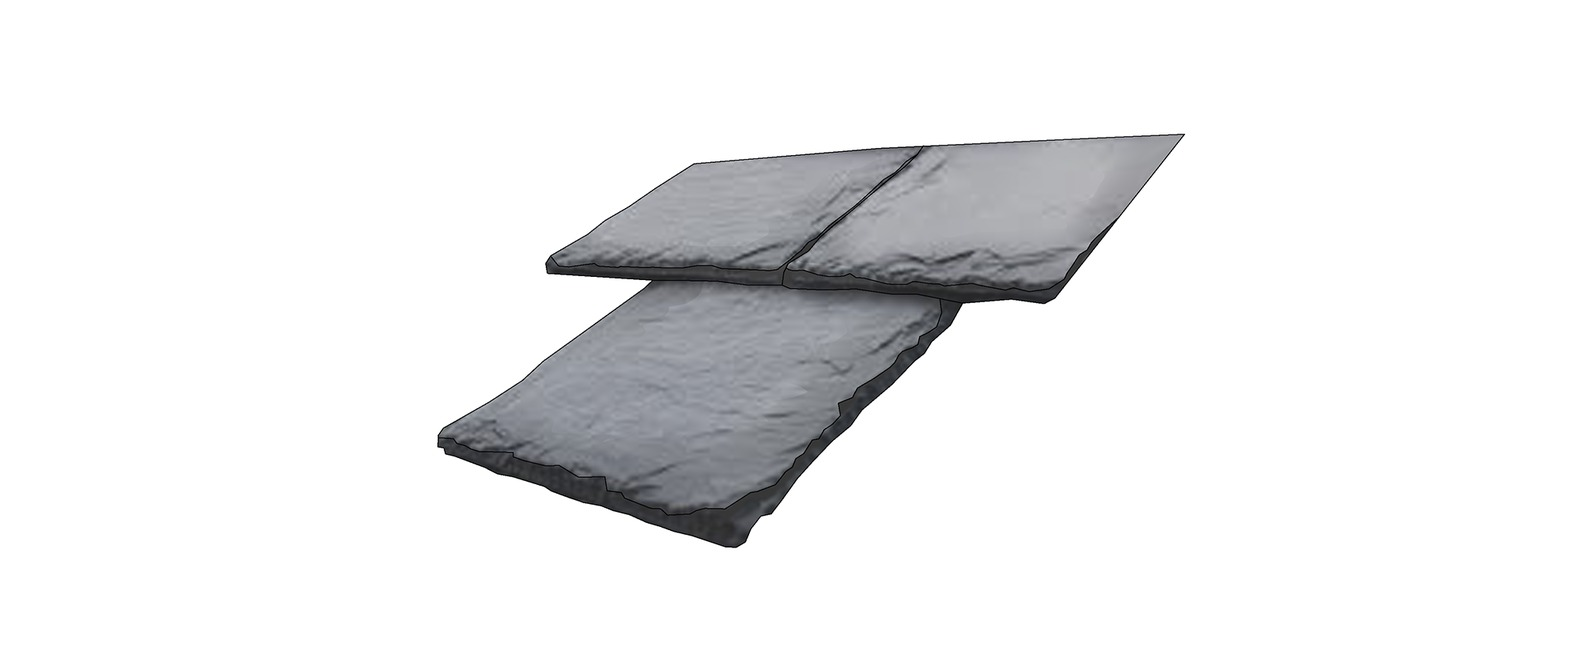 Gallery of Roofing Guide: 26 Types of Tiles, Sheets and